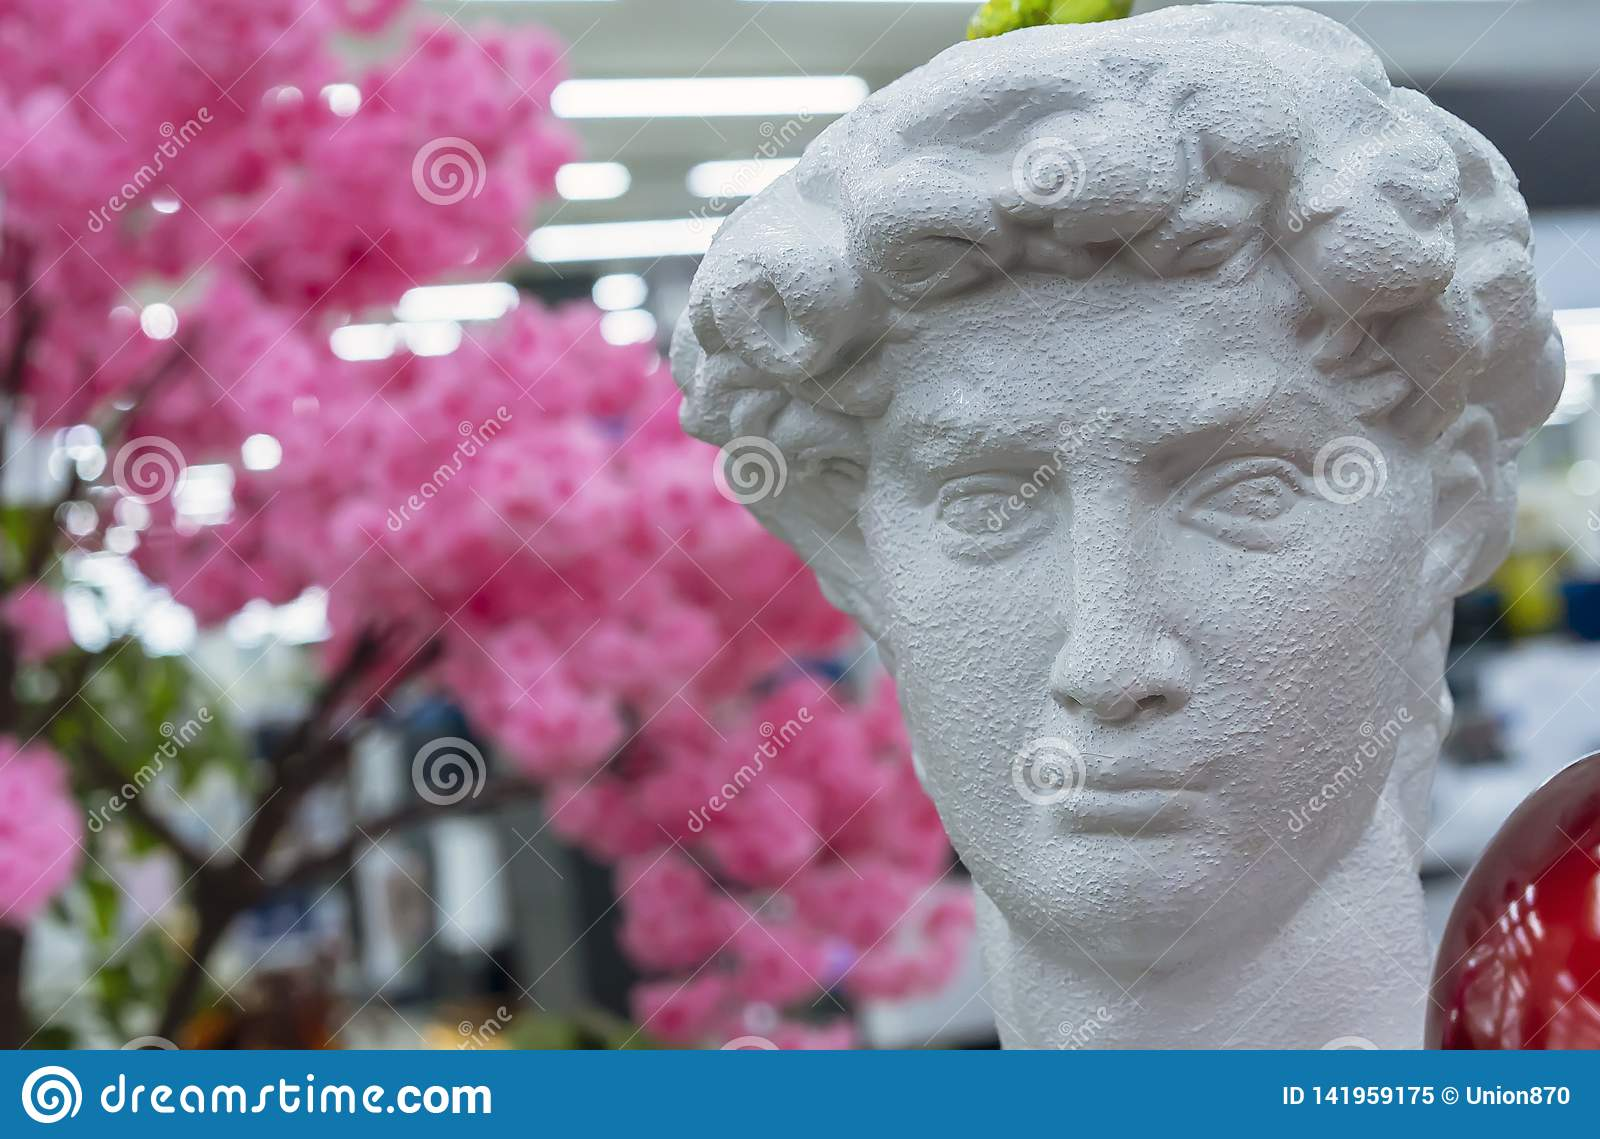 Bust of David by Michelangelo against a background of cherry blossoms